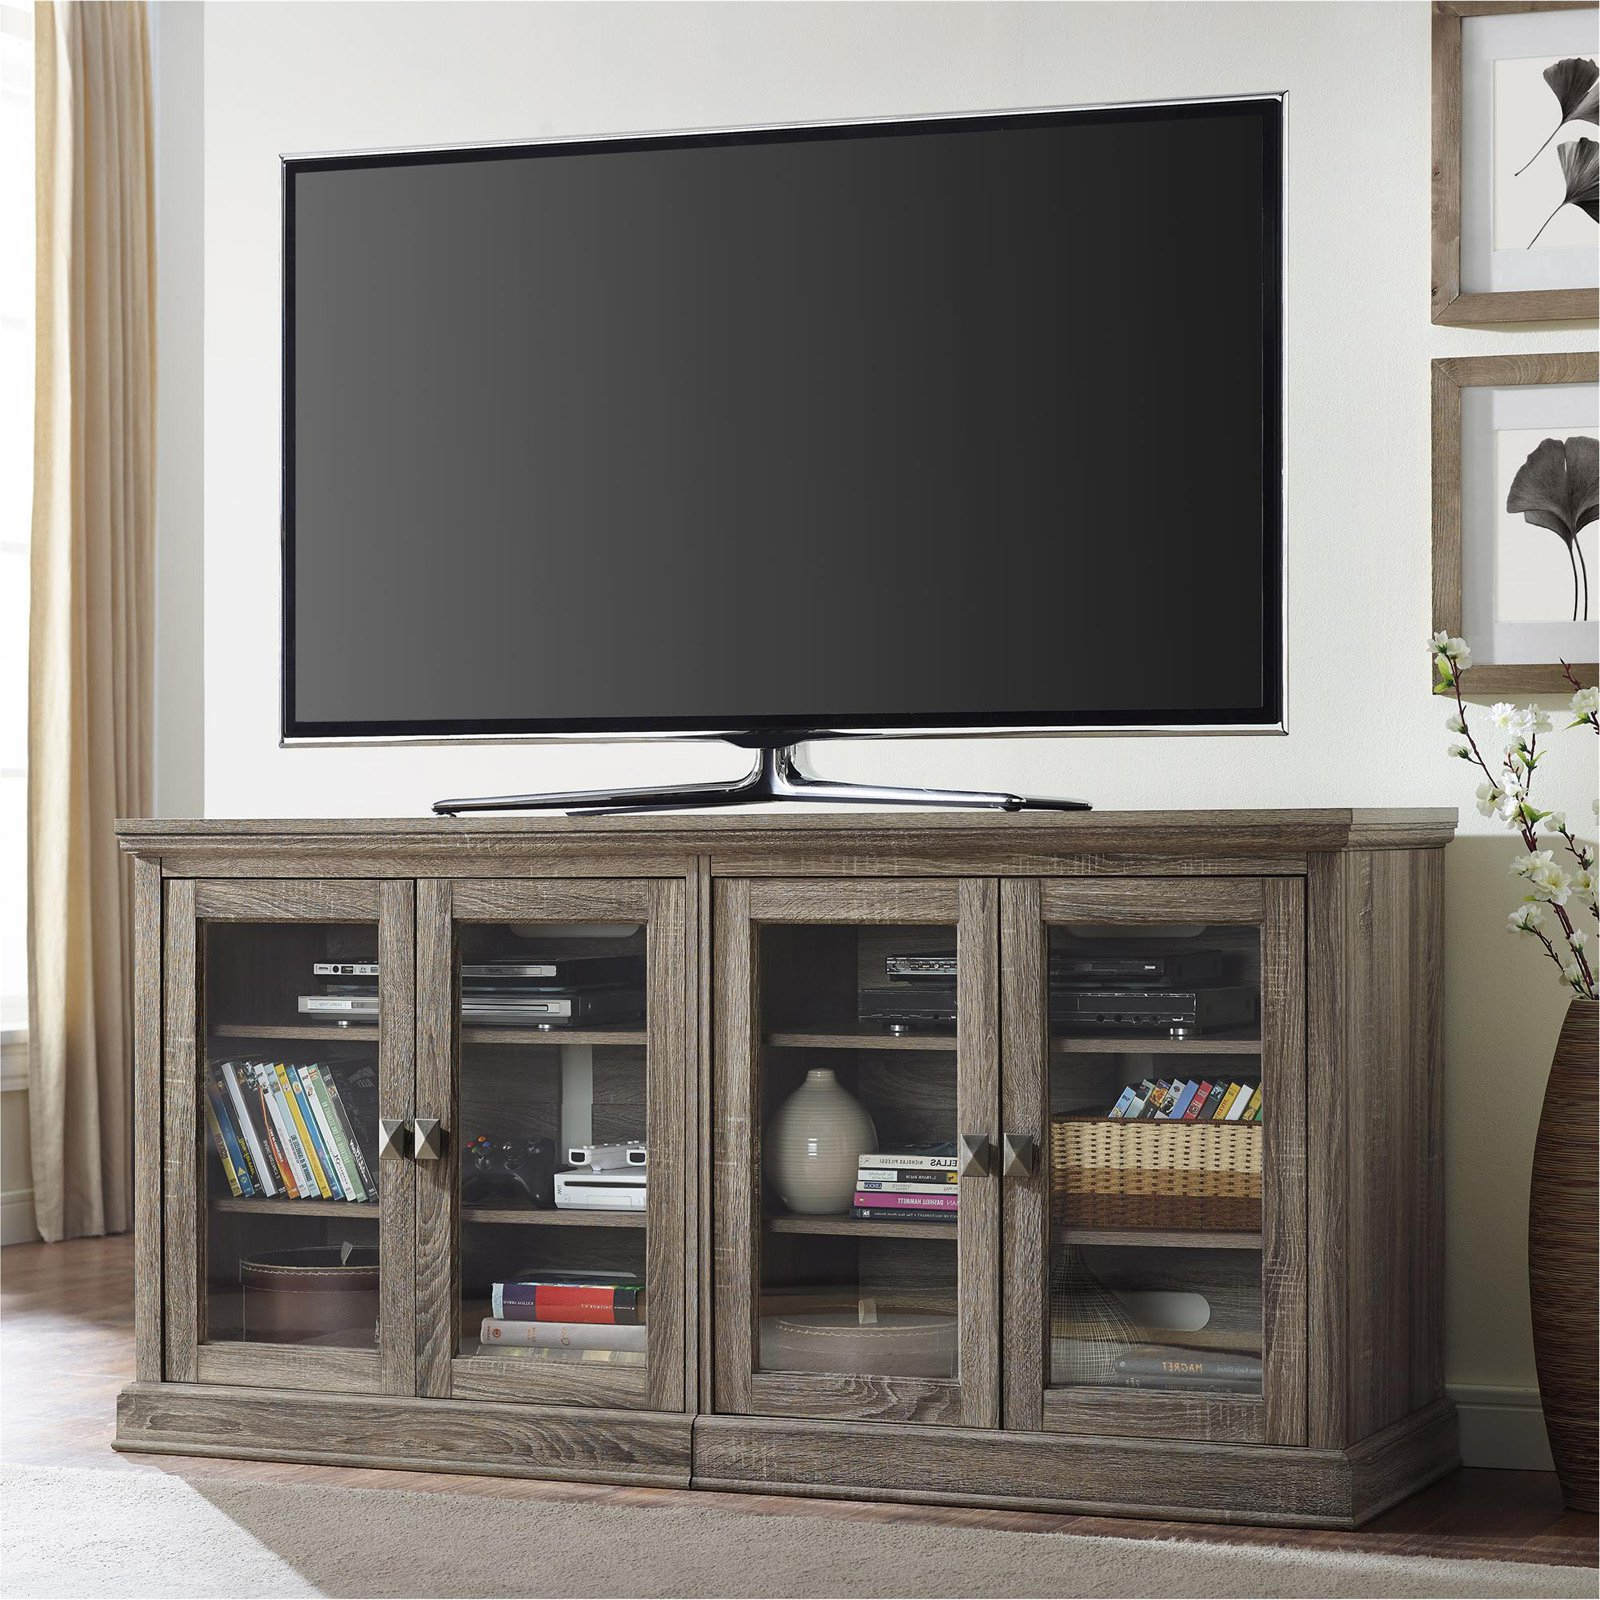 Rustic Tv Stands For Sale For 2018 Ameriwood Home Bennett Tv Stand With Glass Doors For Tvs Up To 70 (Gallery 19 of 20)